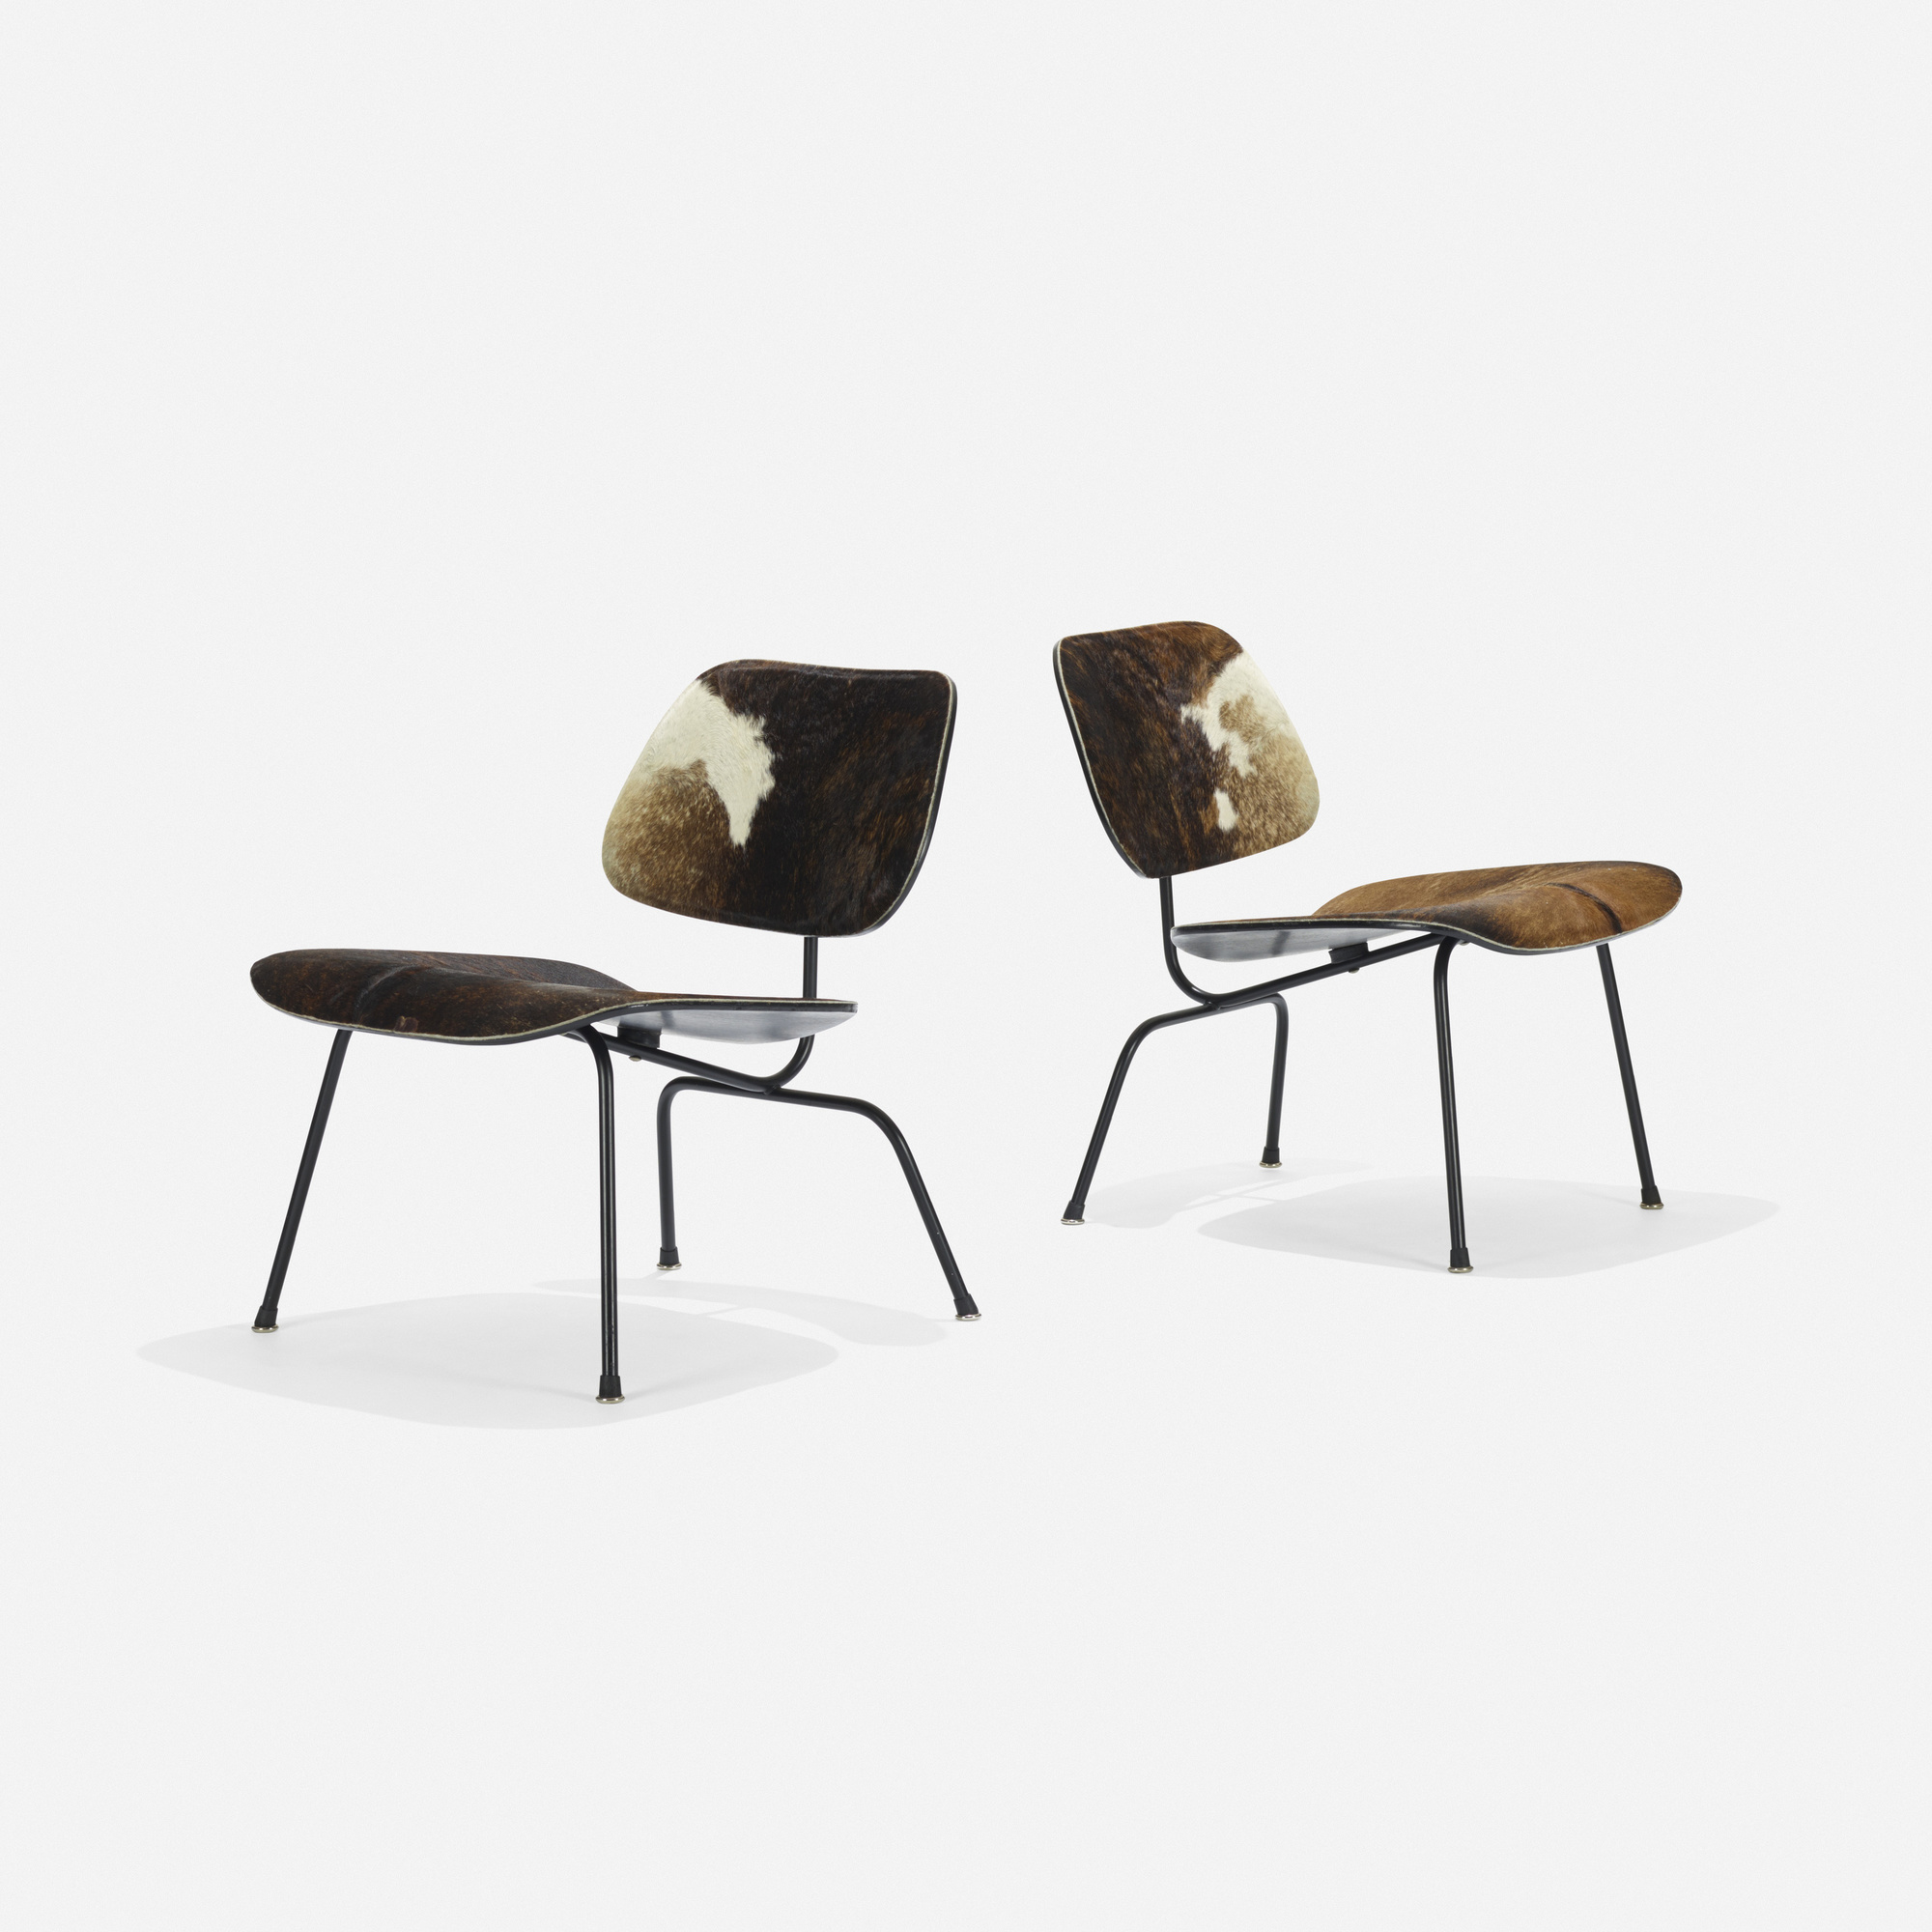 183: Charles and Ray Eames / LCMs, pair (1 of 4)